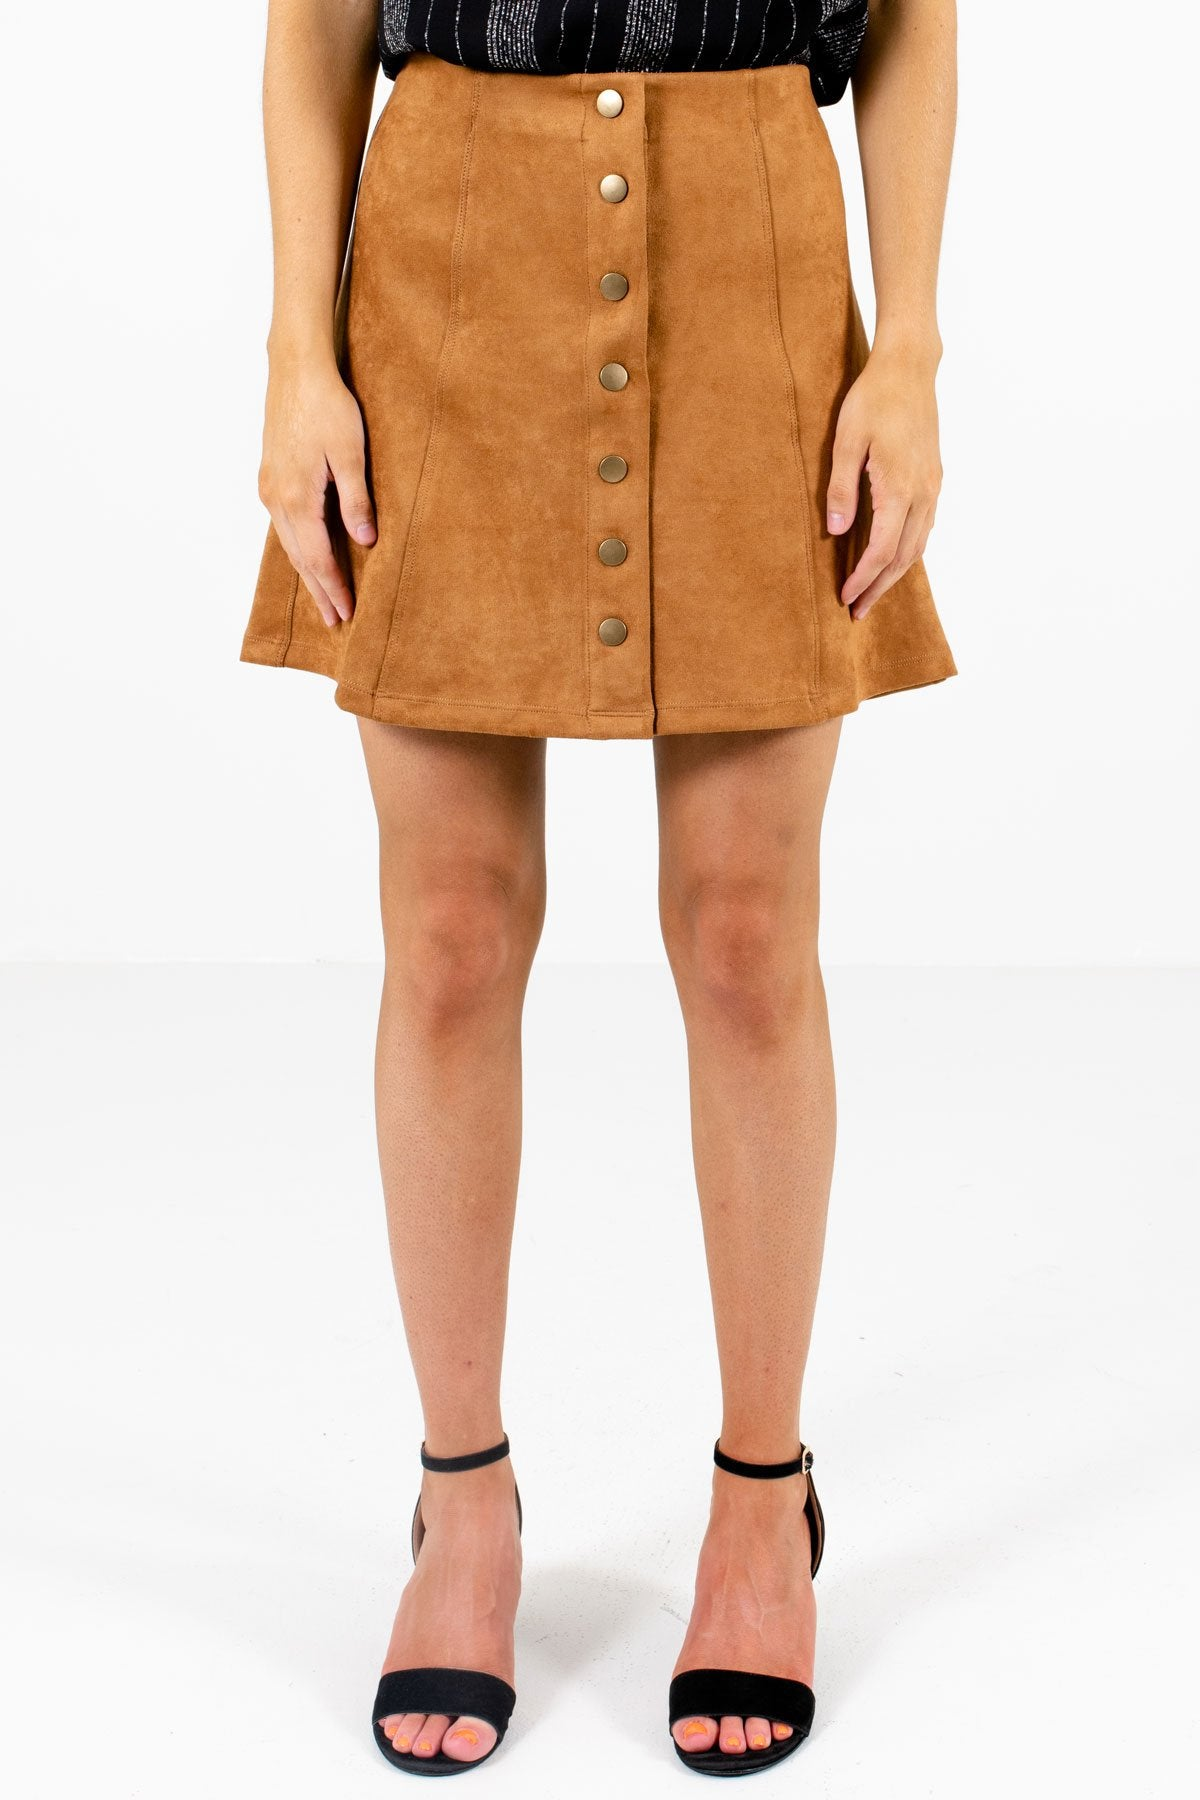 Camel Brown High-Quality Suede Material Boutique Mini Skirts for Women